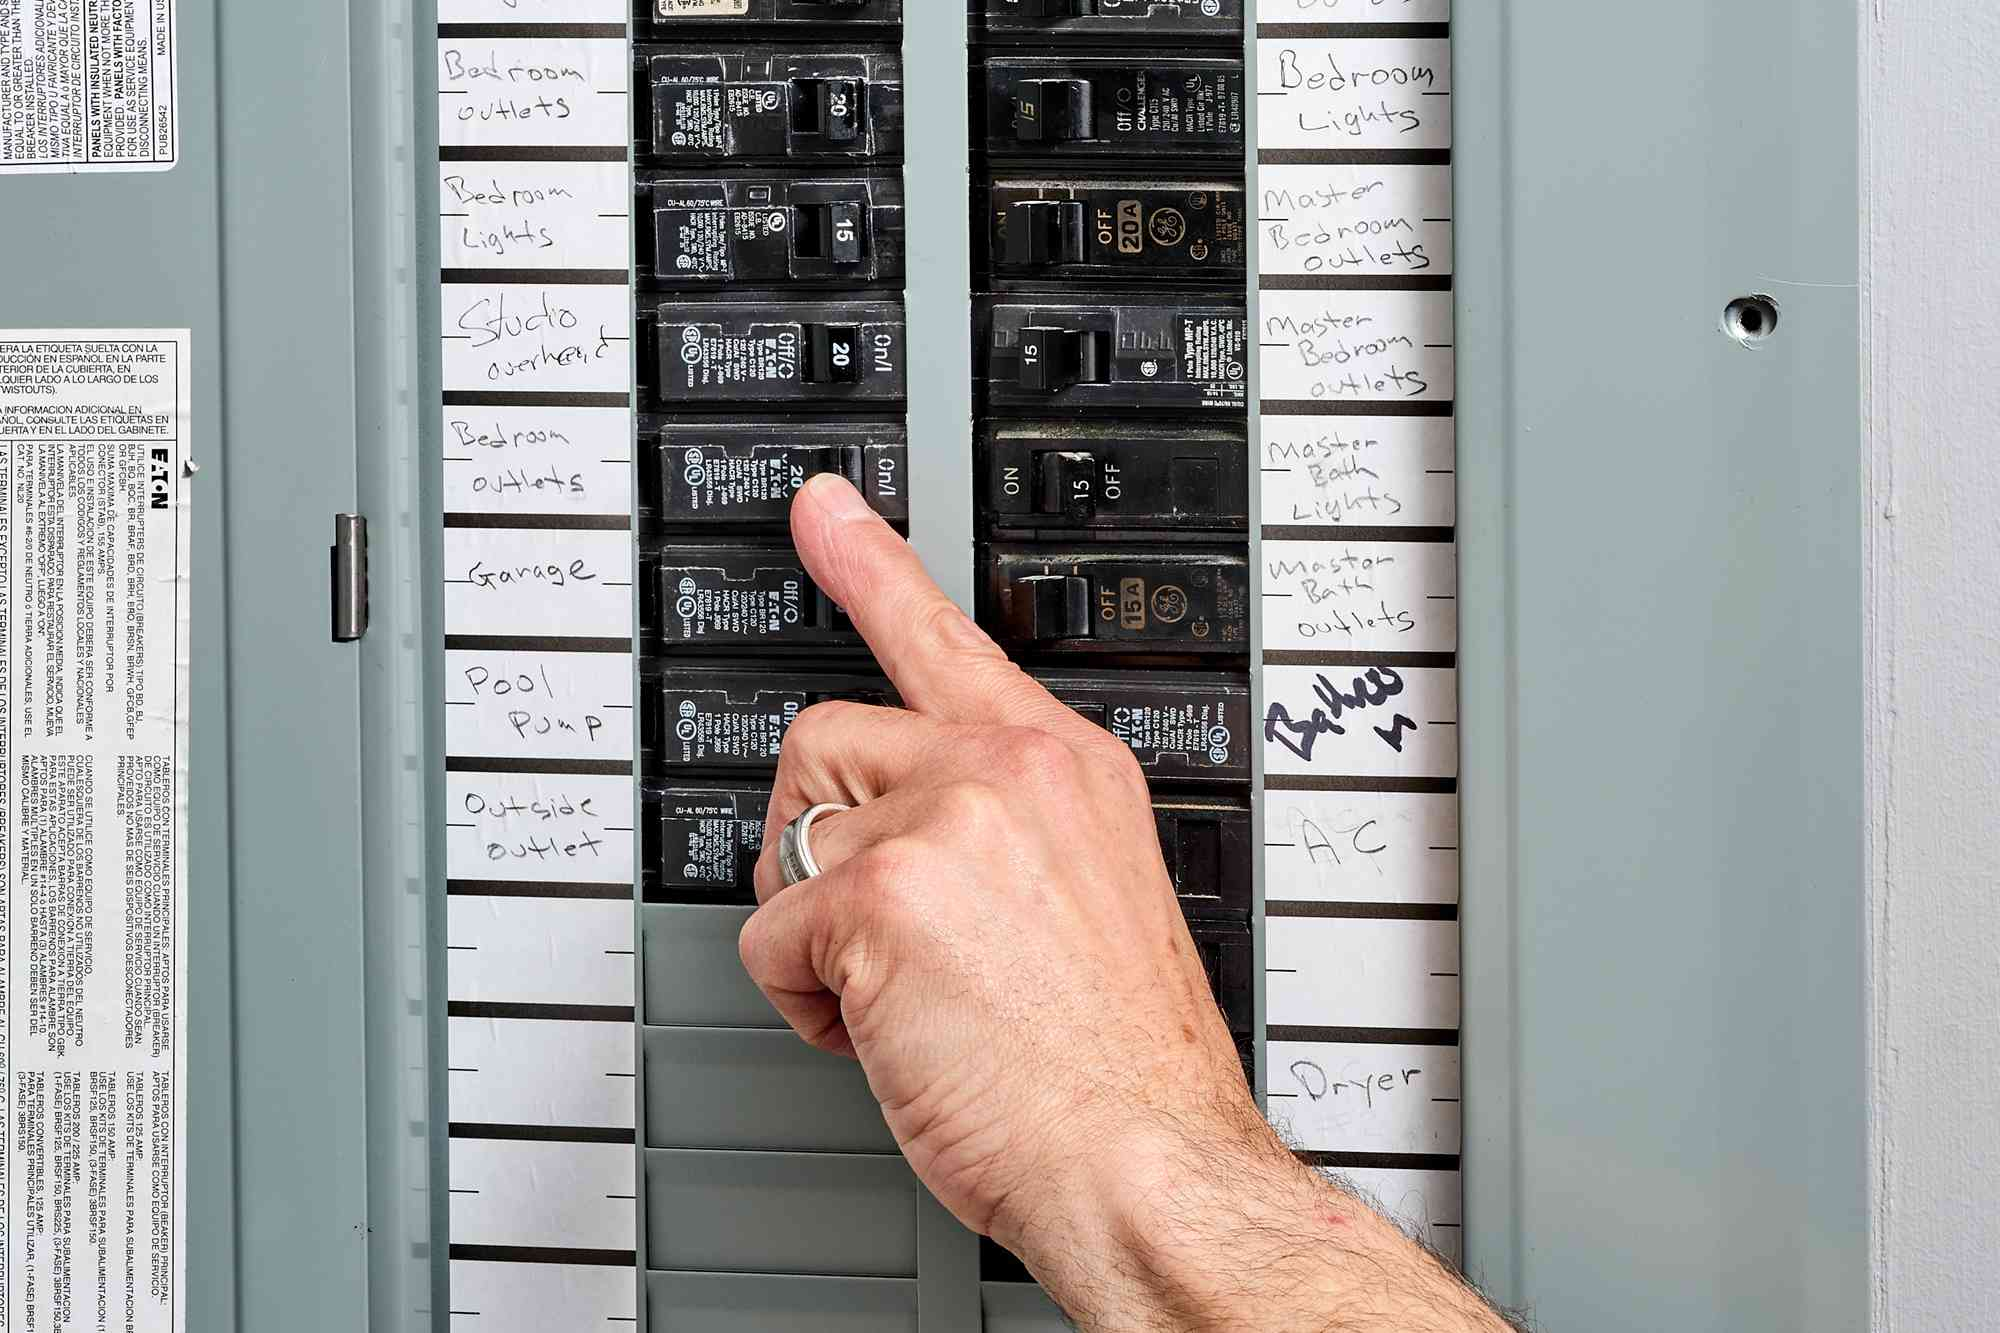 Circuit breaker checked if flipped off in service panel